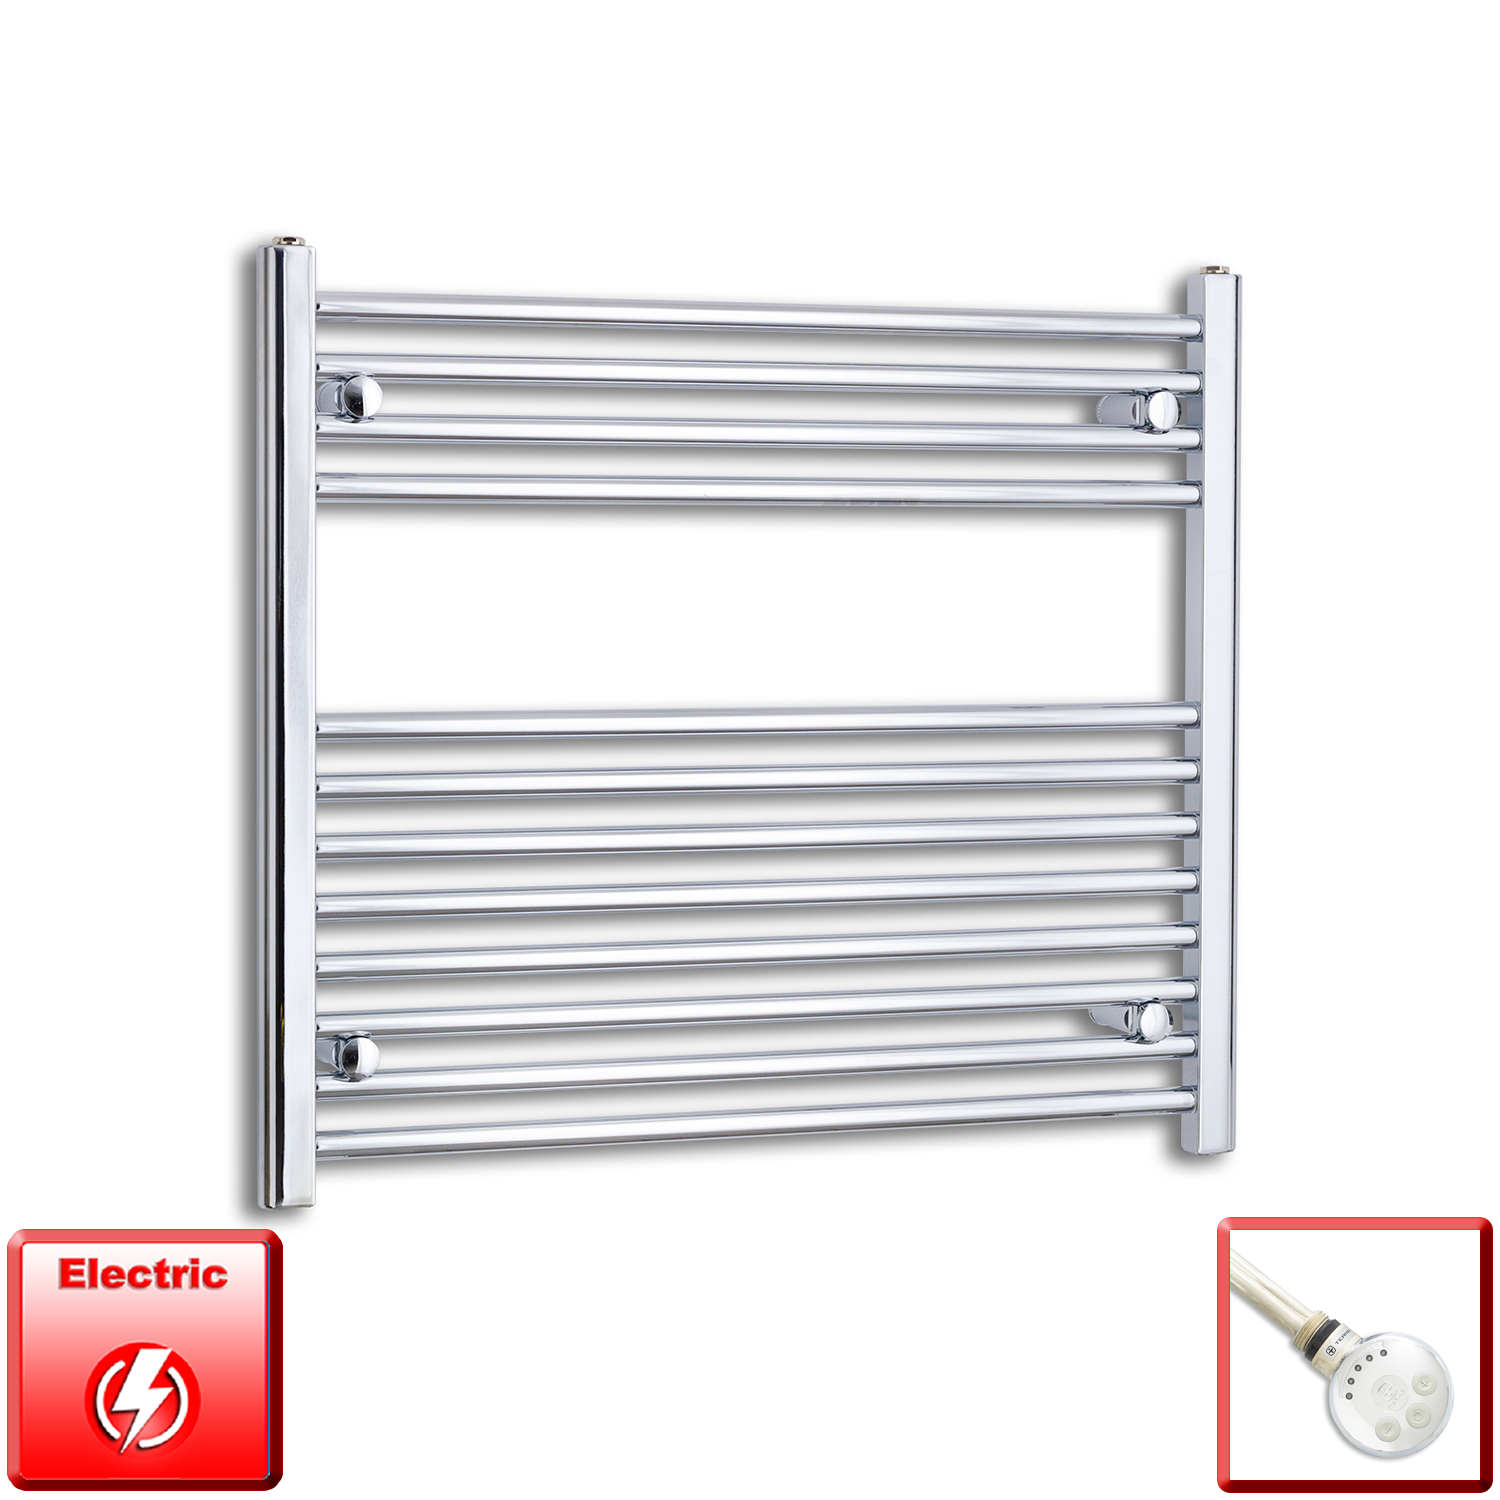 900mm Wide 700mm High Flat Chrome Pre-Filled Electric Heated Towel Rail Radiator HTR,MEG Thermostatic Element